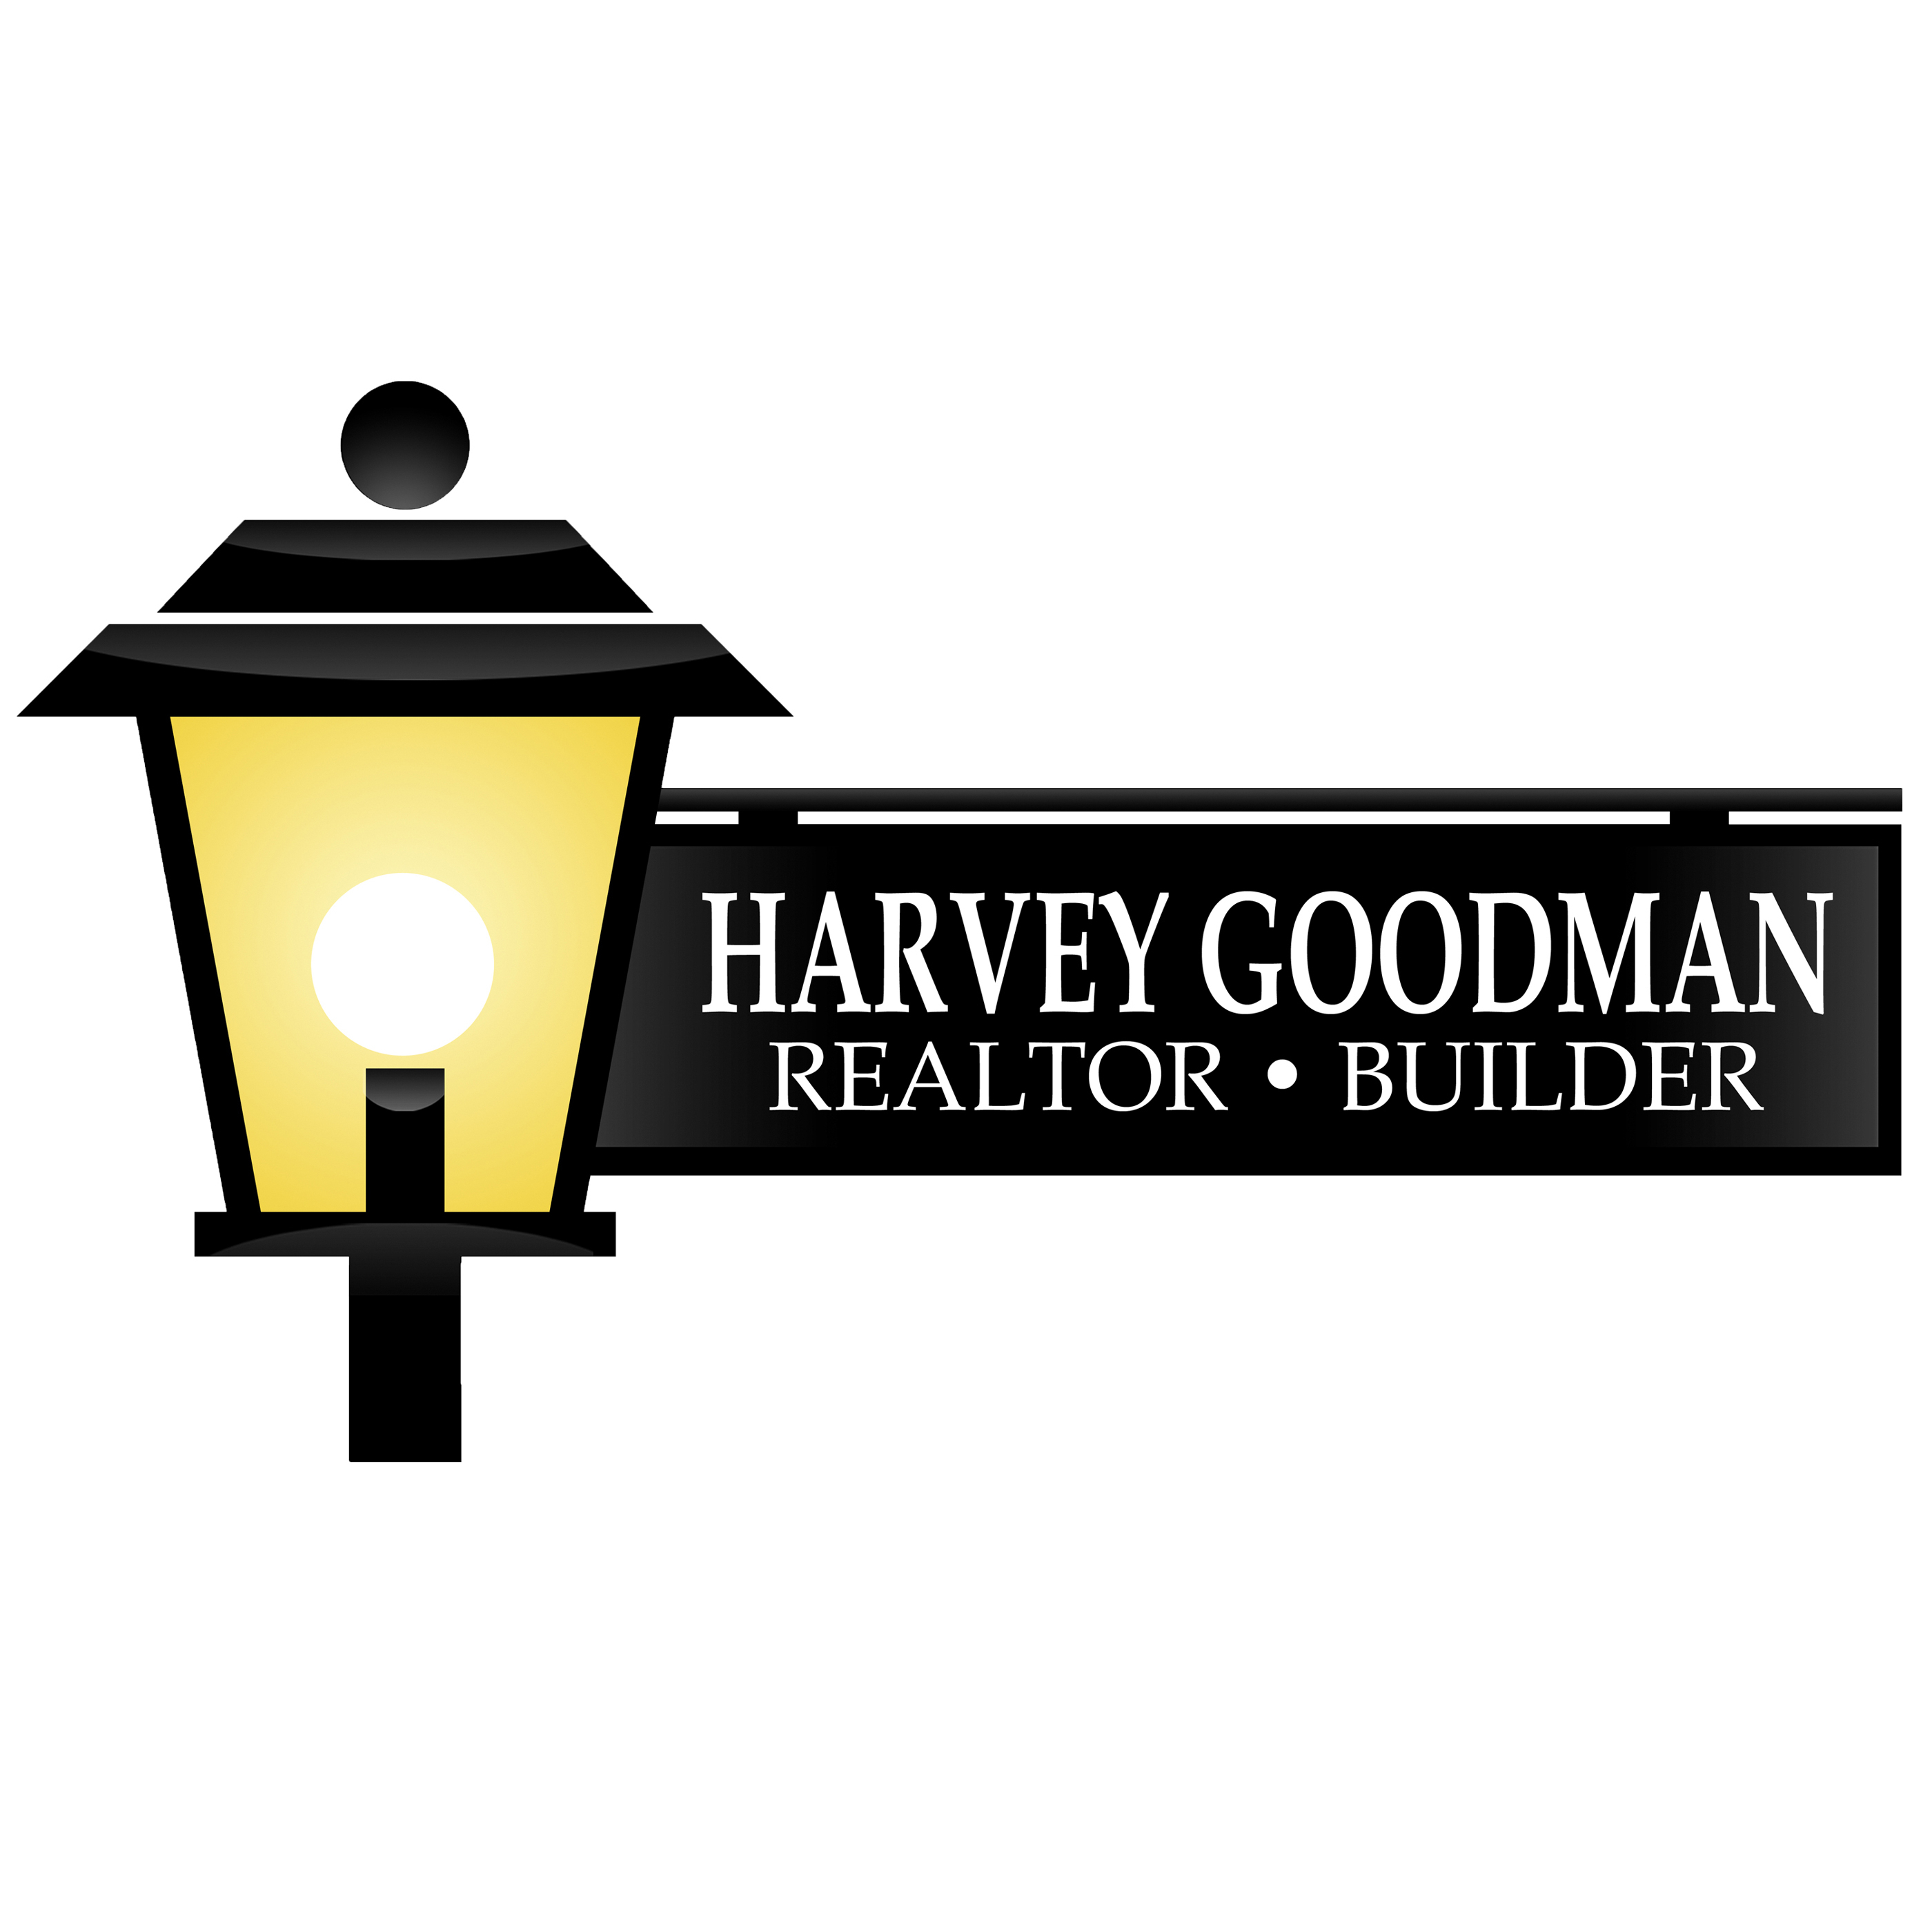 Harvey Goodman Realtor - Saint Clairsville, OH - Real Estate Agents